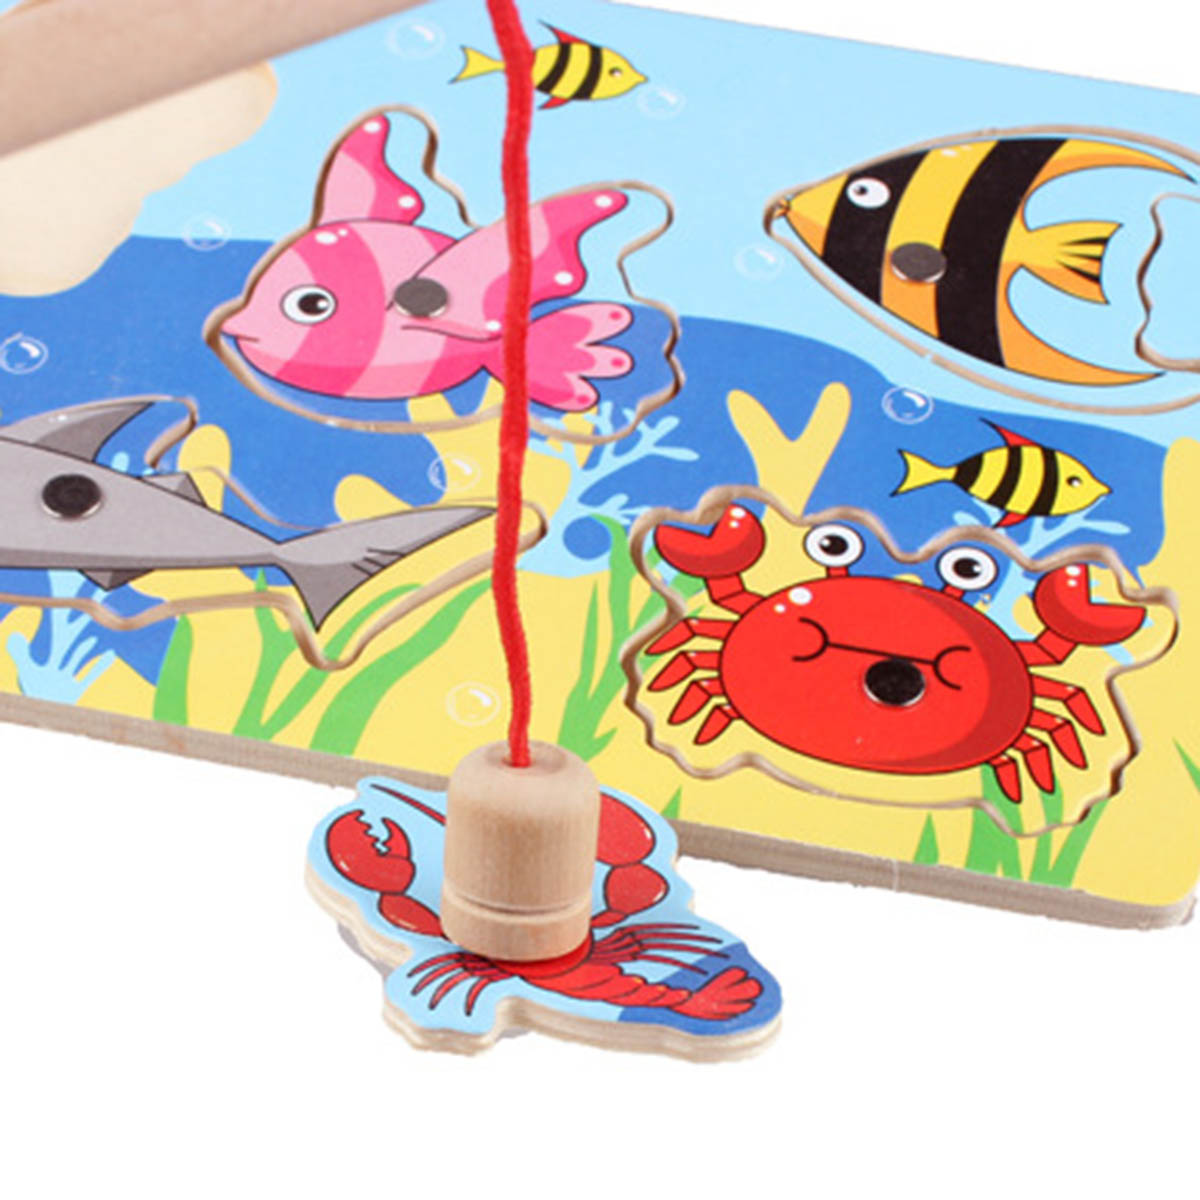 Official Website 1set Magnetic Fishing Toy Board Cartoon Wooden Fishes Magnet Rod Fishing Toy Educational Fish Shape Matching Puzzle Jigsaw Toys Toys & Hobbies Fishing Toys